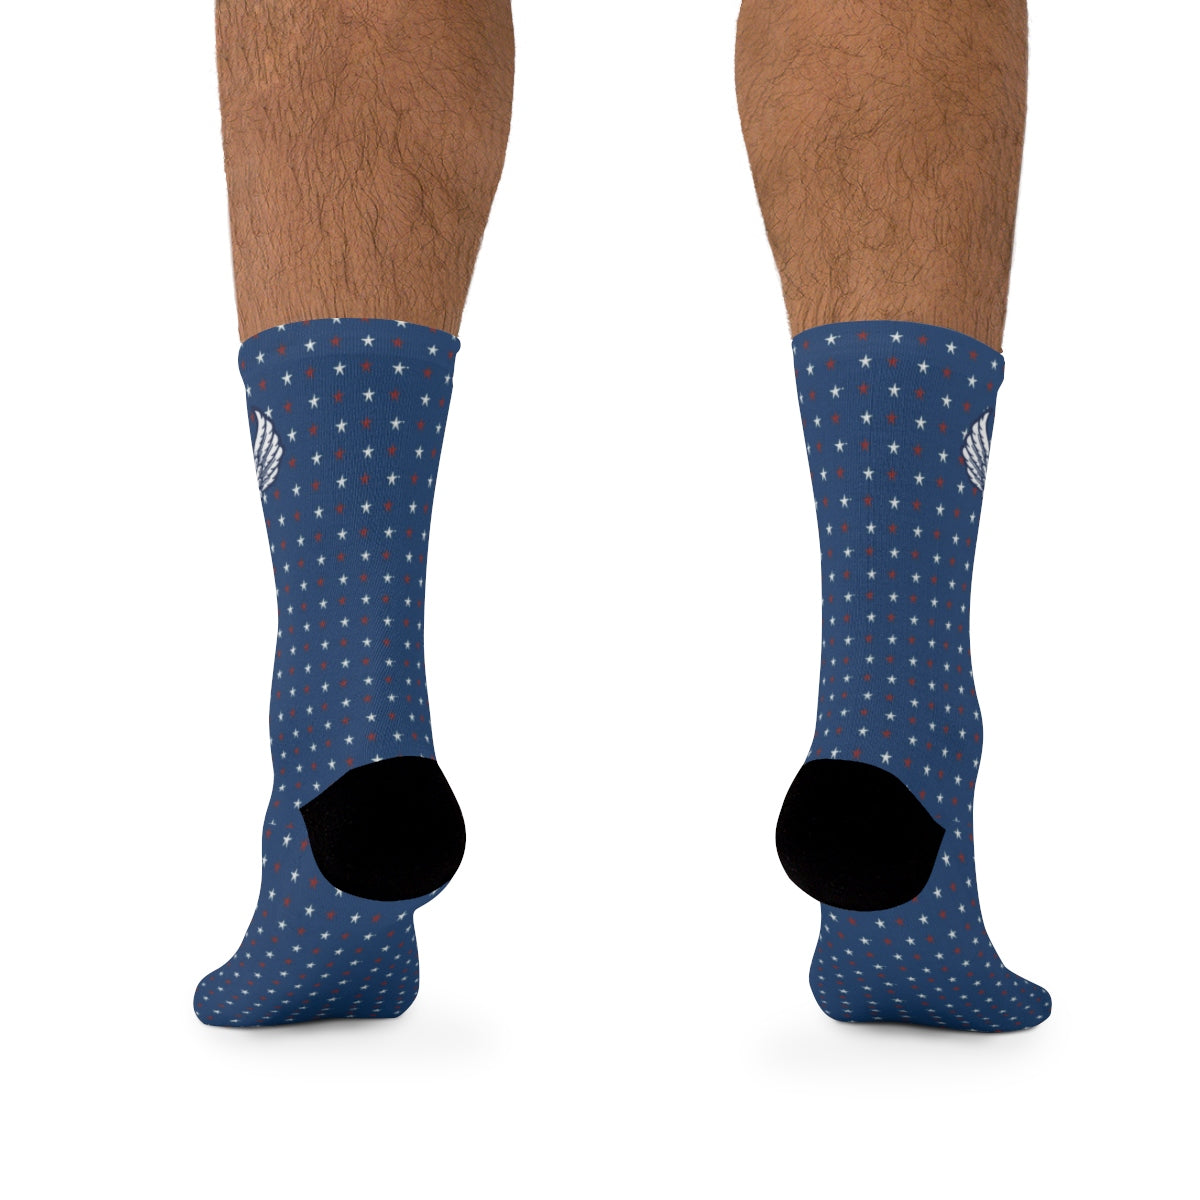 D*L*Y*S*I Red, White & Blue Stars Socks